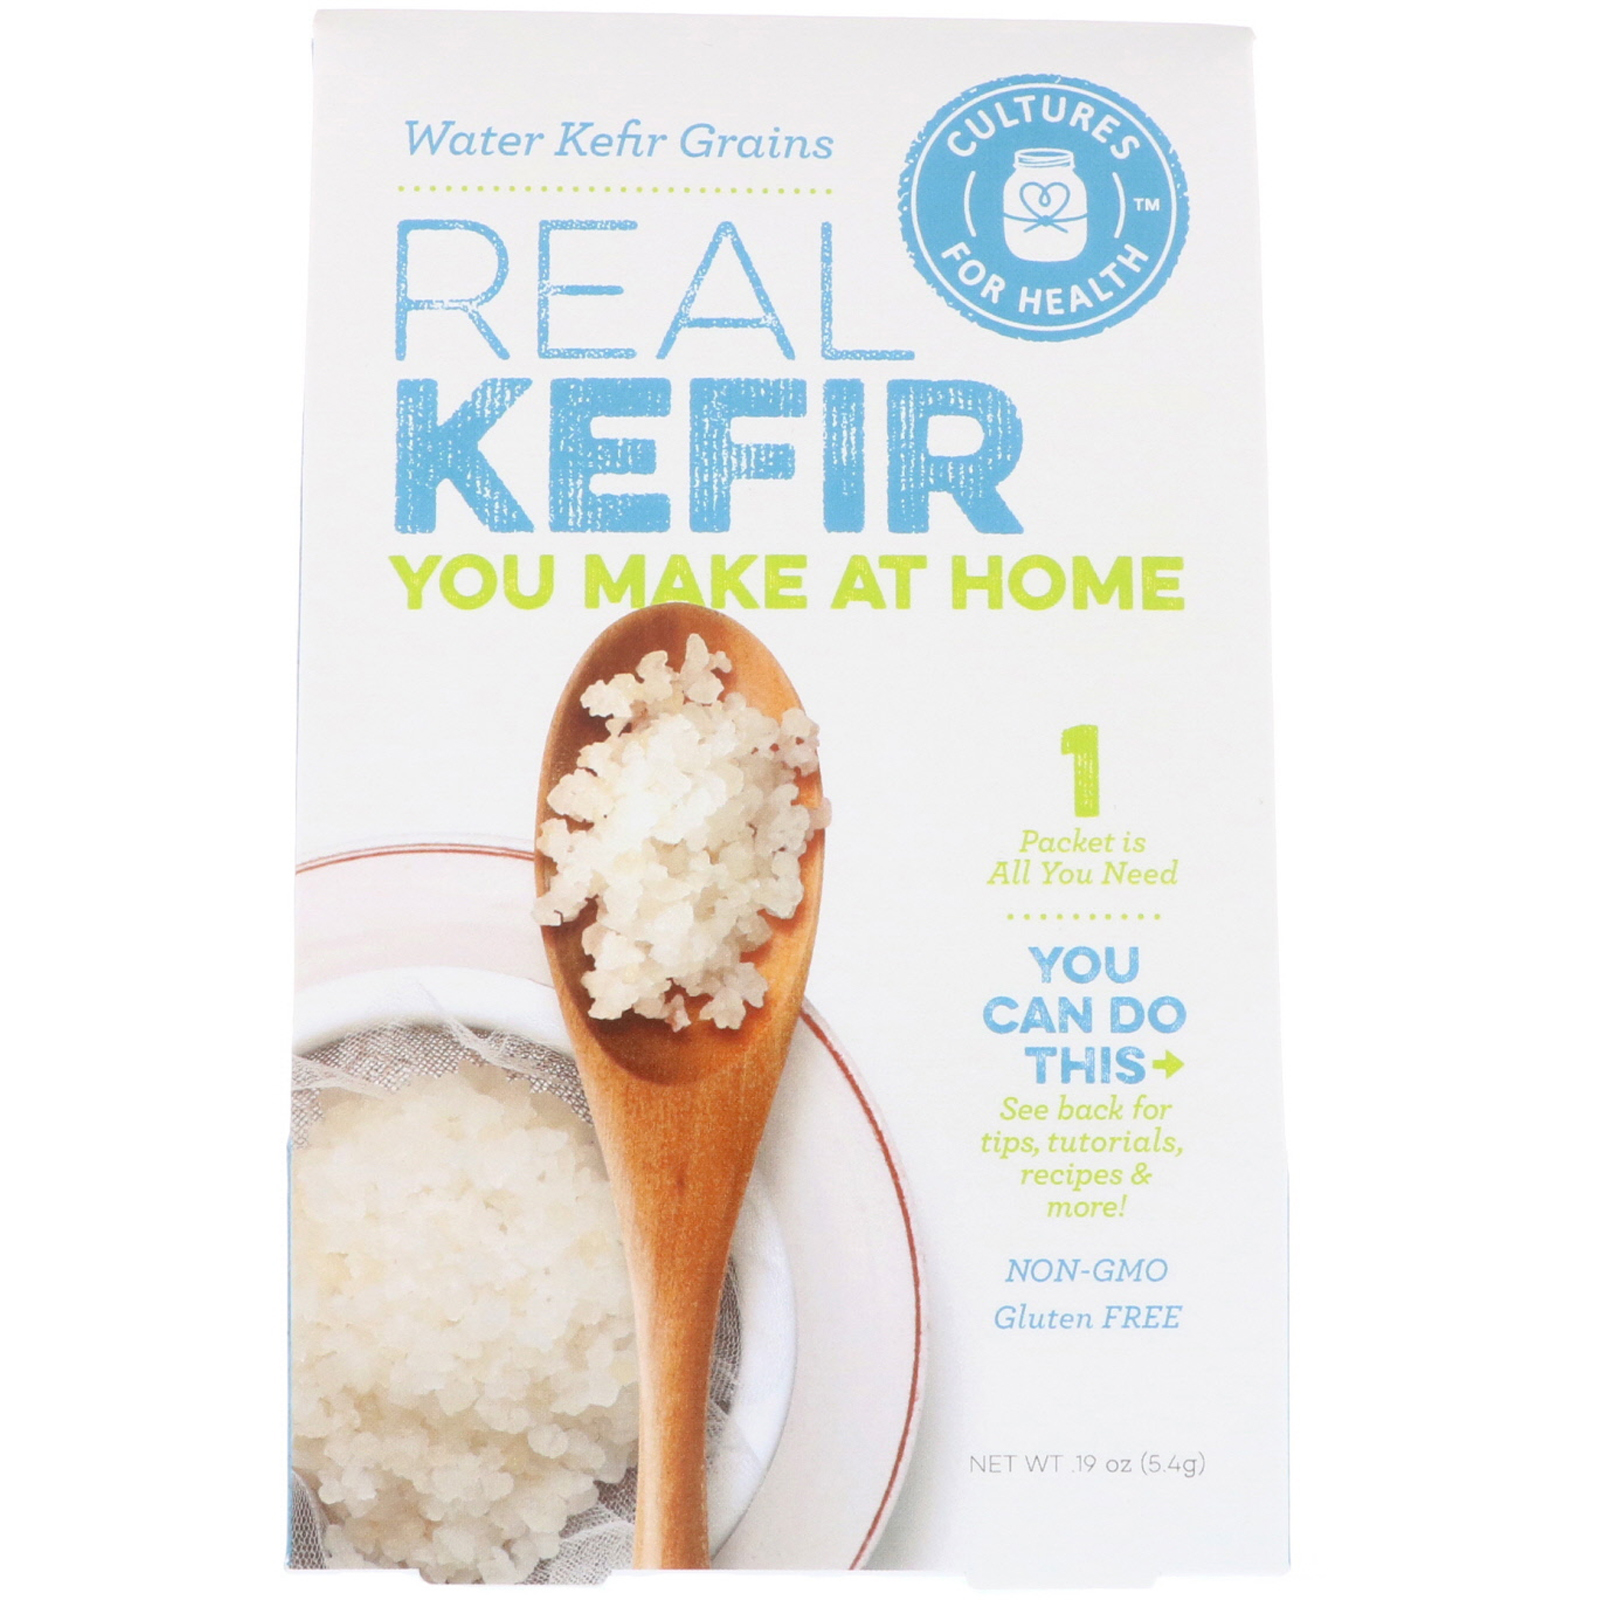 Cultures For Health Real Kefir Water Grains 1 Packet 19 Lotion